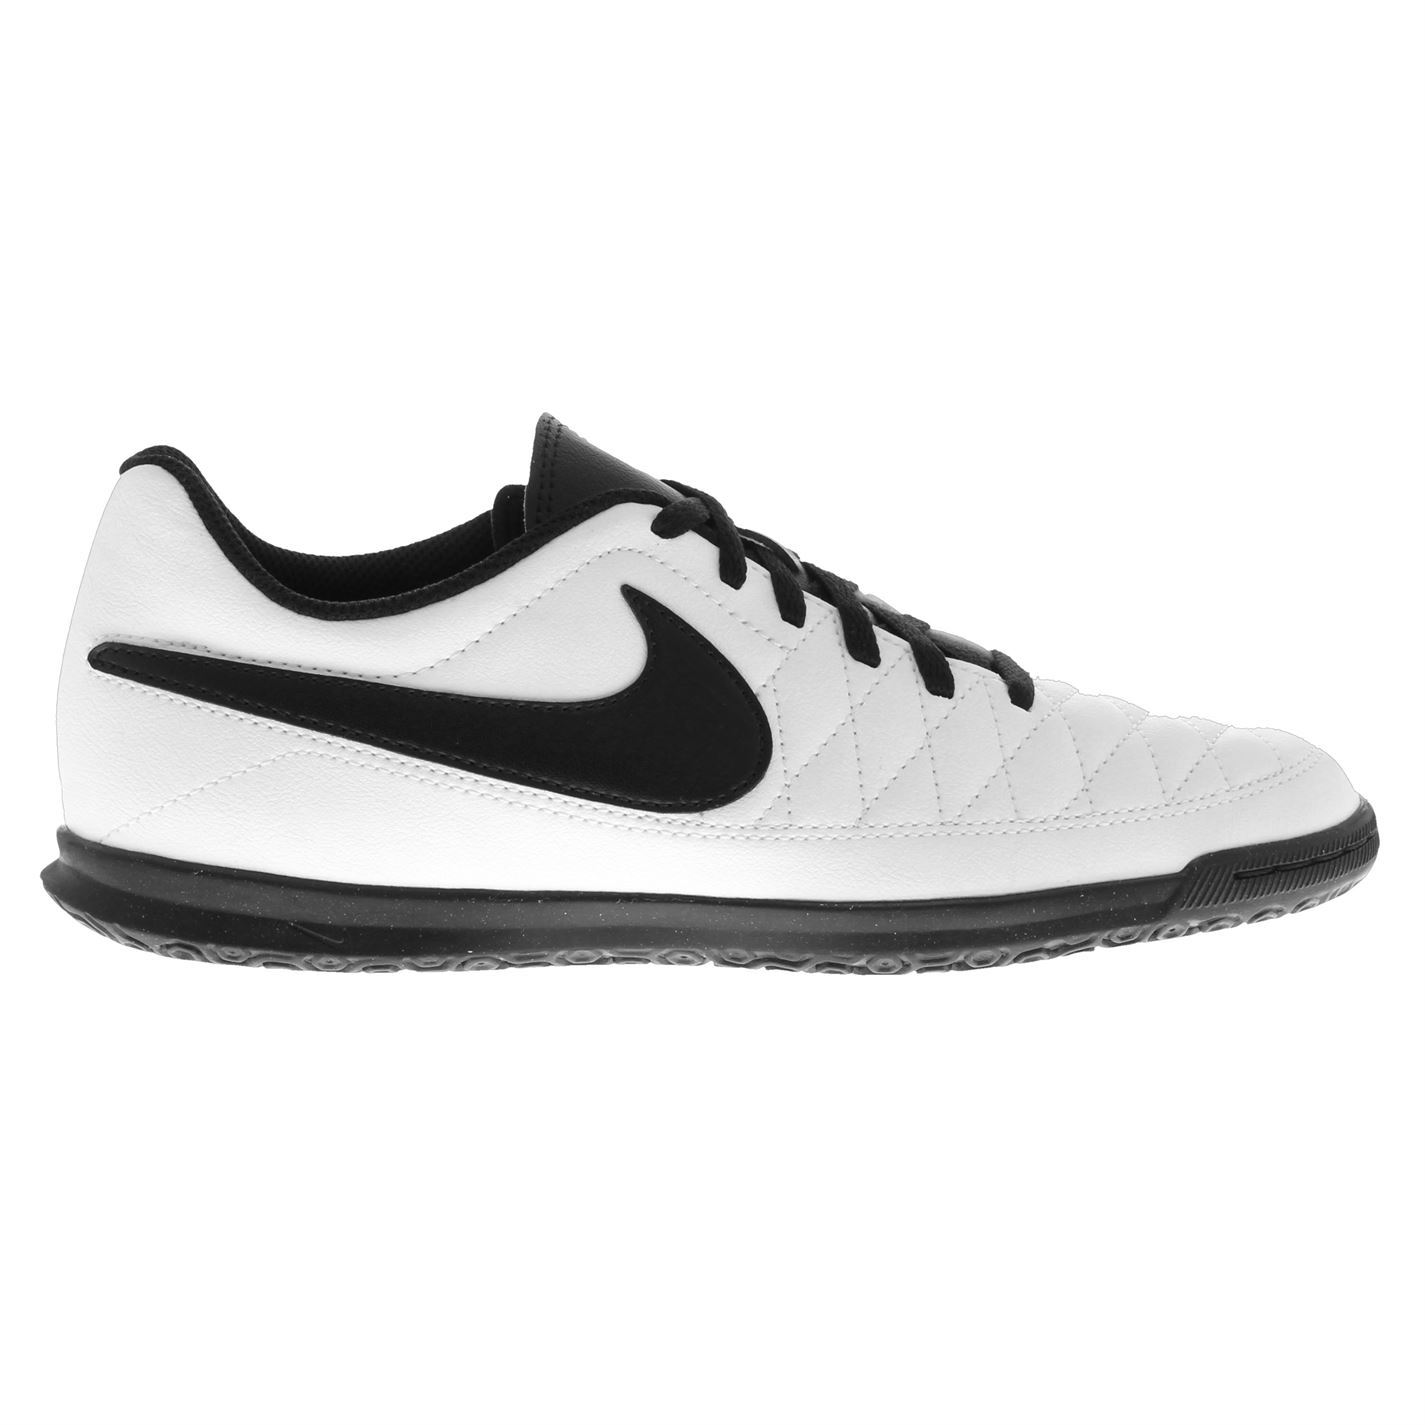 Nike-majestry-Indoor-Football-Baskets-Pour-Homme-Football-Futsal-Chaussures-Baskets-Bottes miniature 27